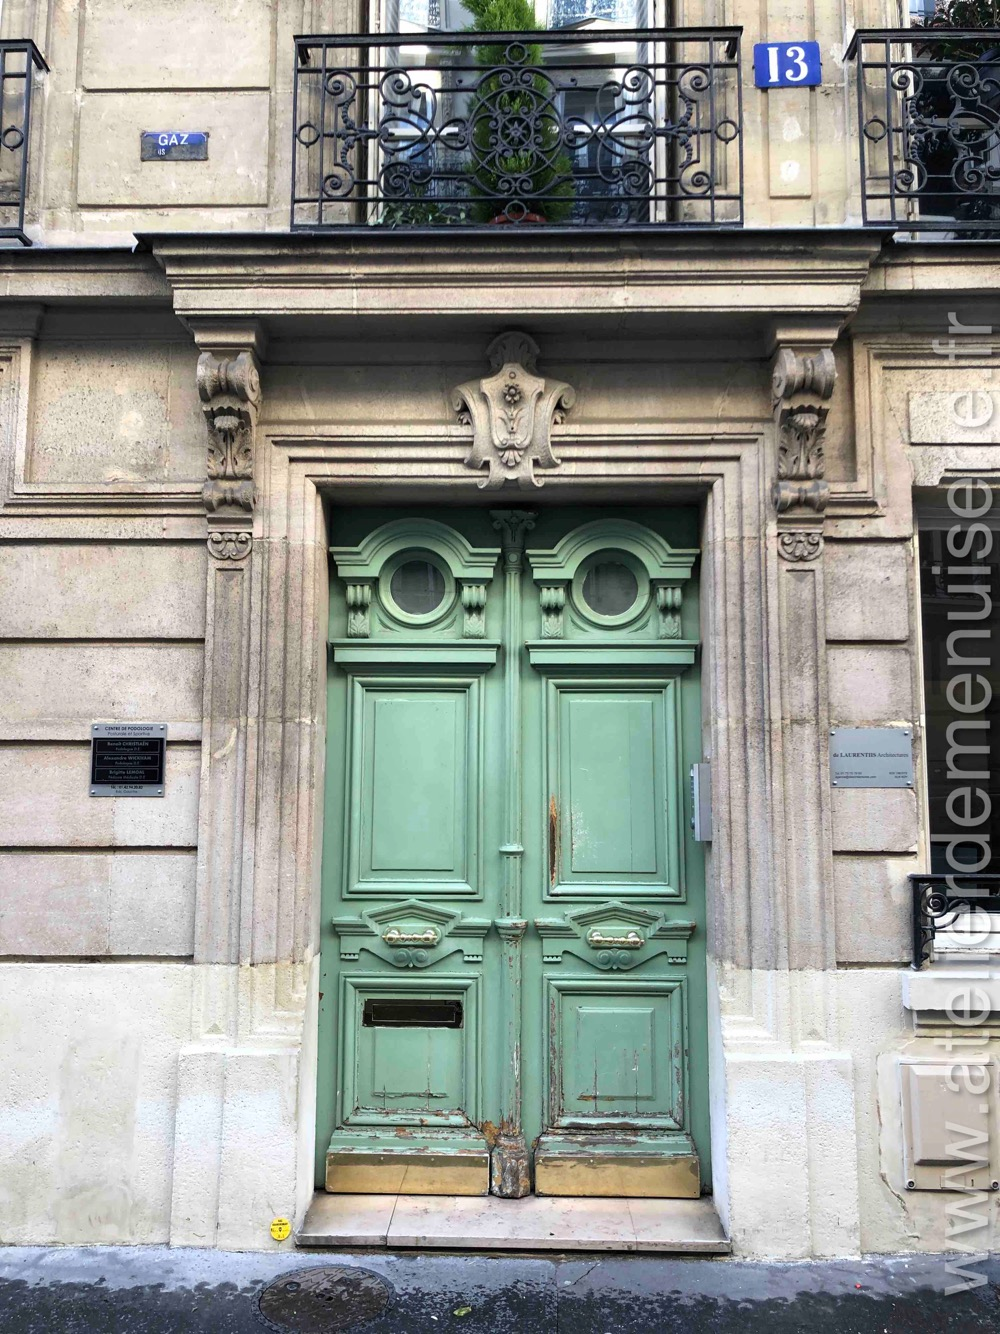 Porte Batarde - 13 Rue De Naples - Paris 8